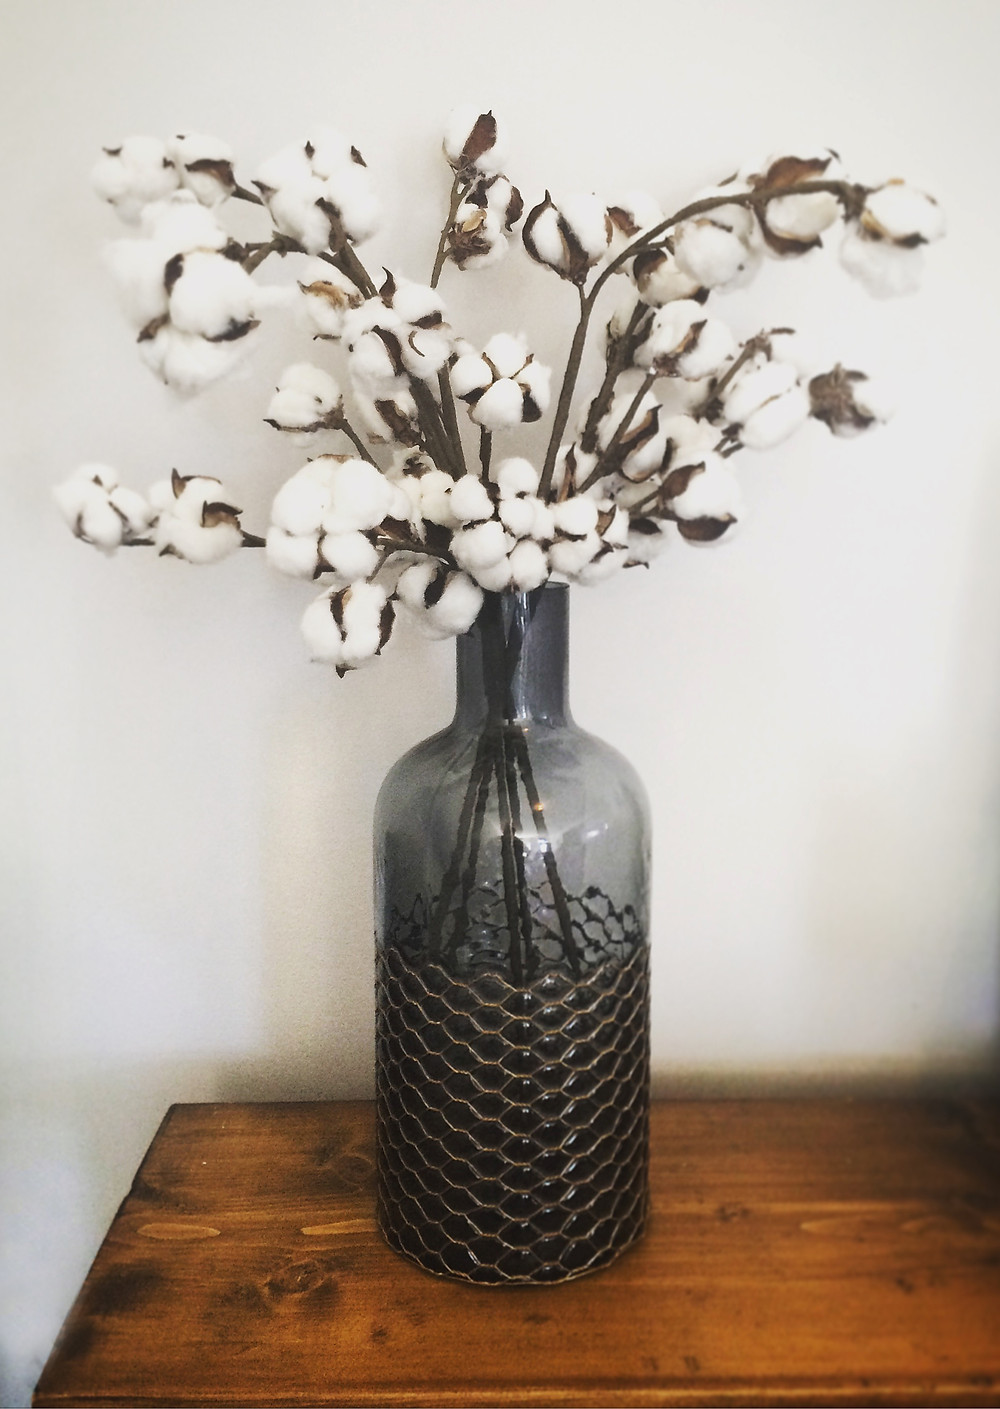 Cotton Ball Stems & Copper Chicken Wire Vase